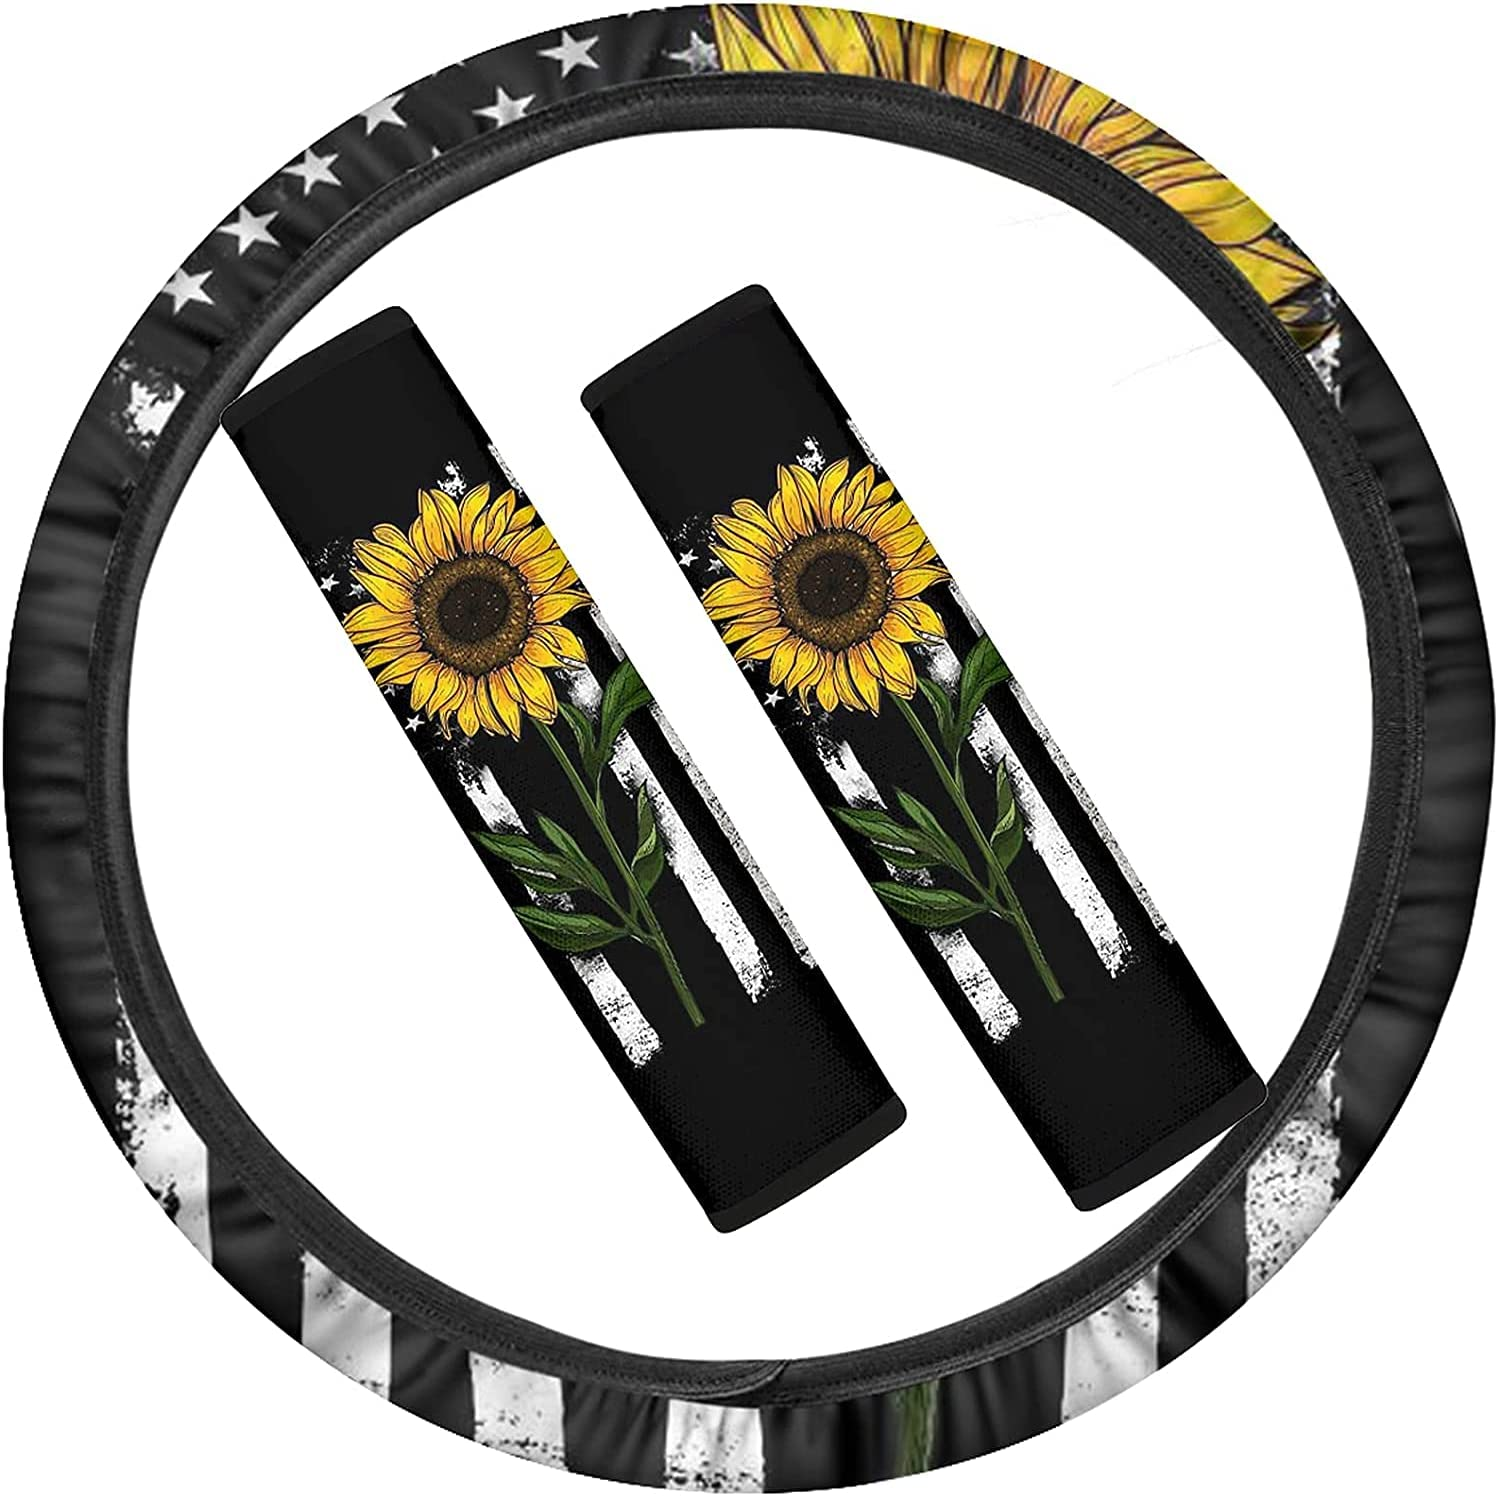 FKELYI American FlagYellow Sunflowers Max 62% OFF Department store Wheel Steering Car Decor